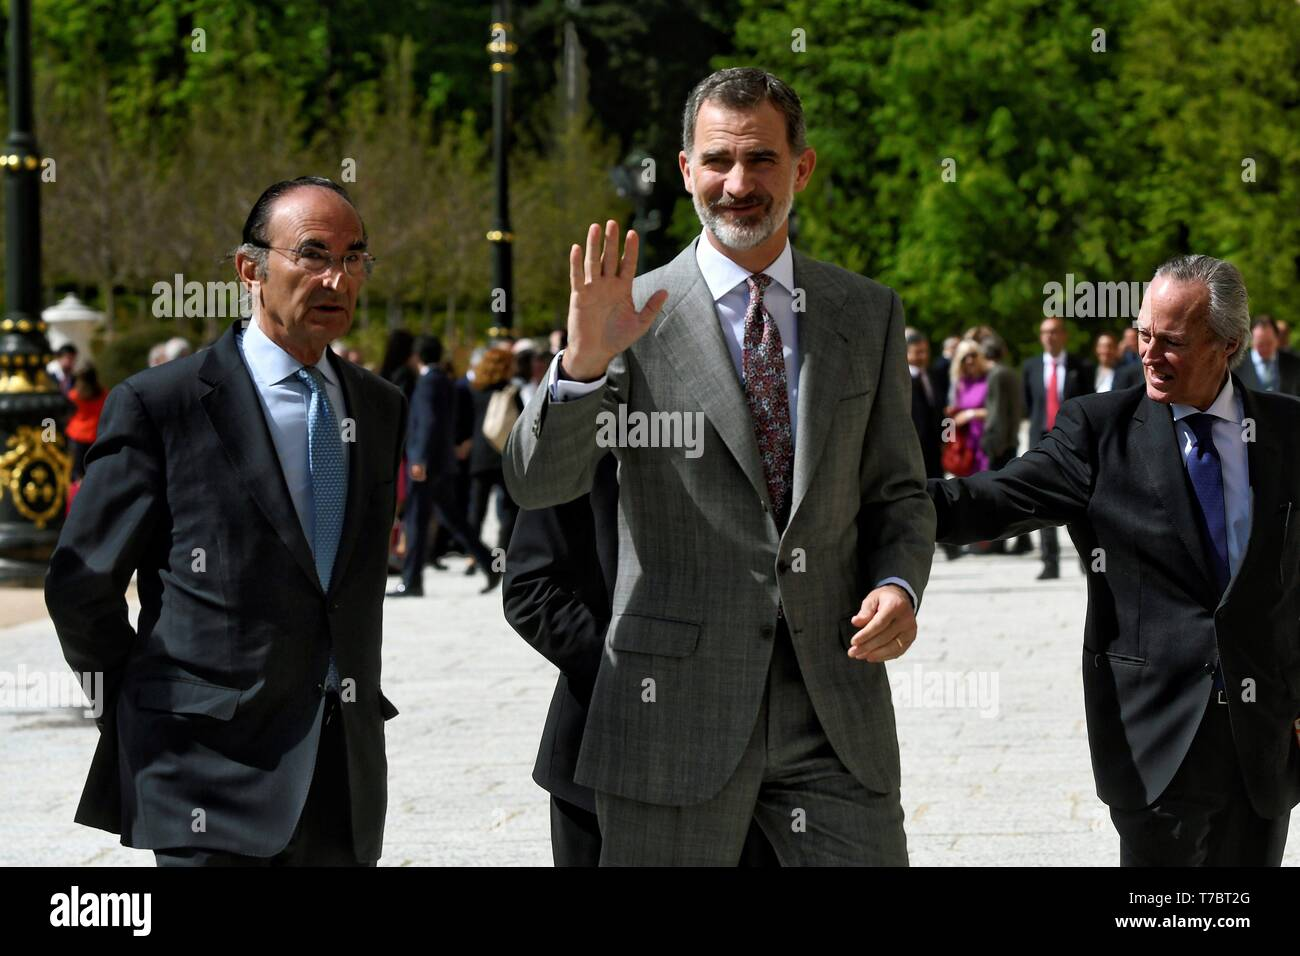 Segovia, Spain. 6th May 2019. King Felipe VI of Spain (C) and President of Elcano Royal Institute, Emilio Lamo de Espinosa (L), arrive to attend the meeting of Elcano's Institute Scientific Council in La Granja de San Ildefonso, Segovia, Spain, 06 May 2019. EFE/ Pablo Martin Credit: EFE News Agency/Alamy Live News - Stock Image